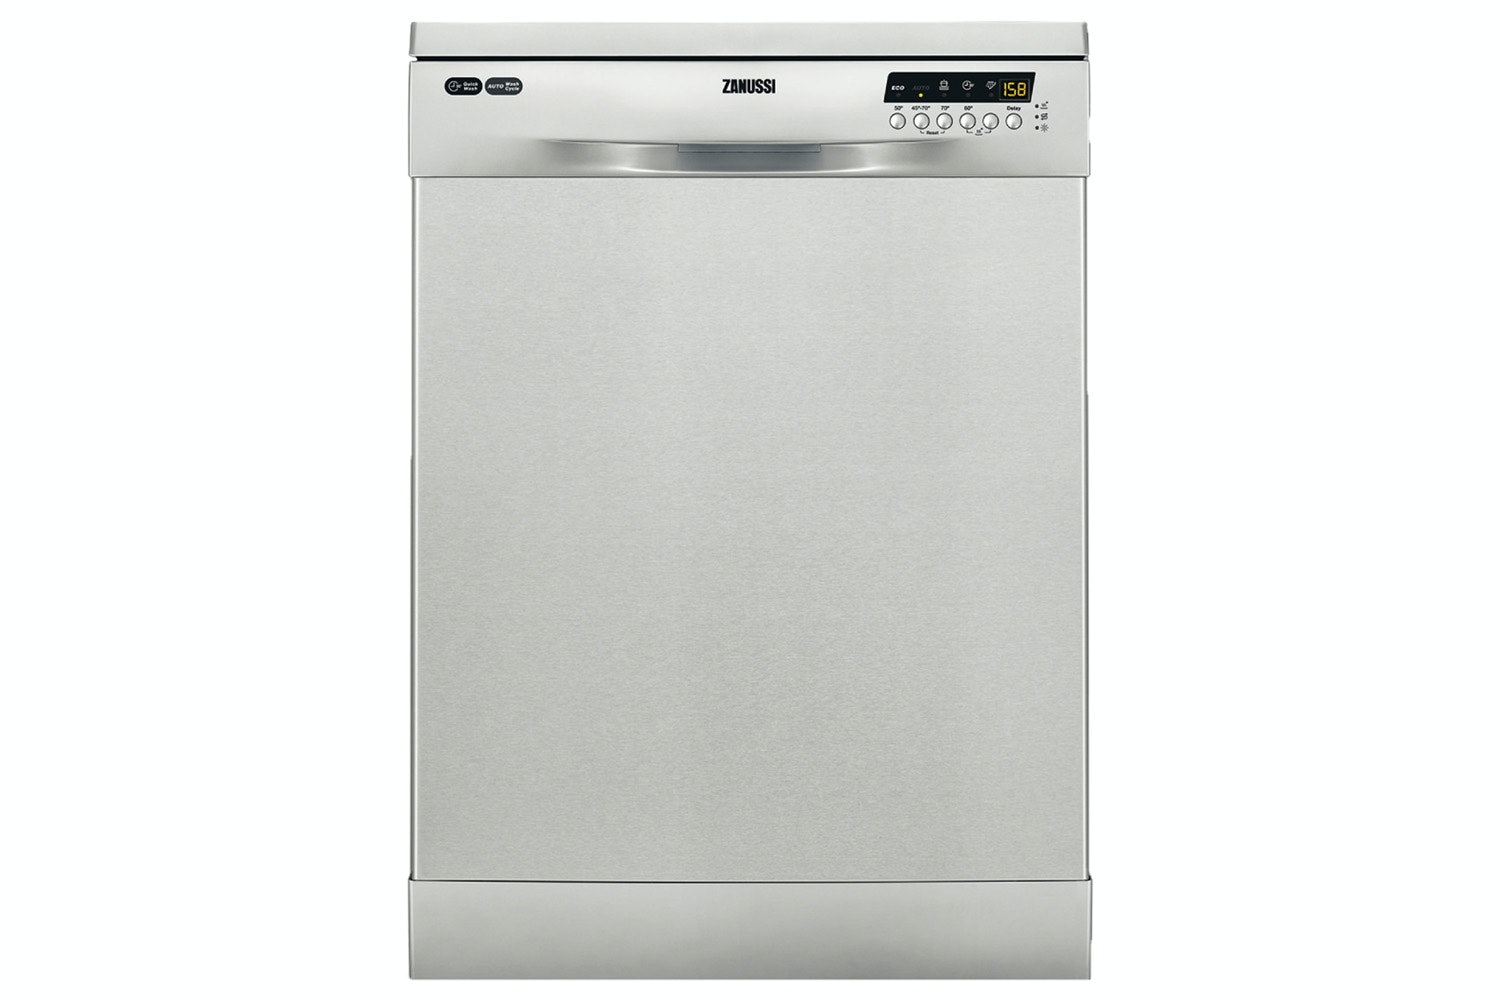 Zanussi Freestanding Dishwasher | 13 Place | ZDF26004XA